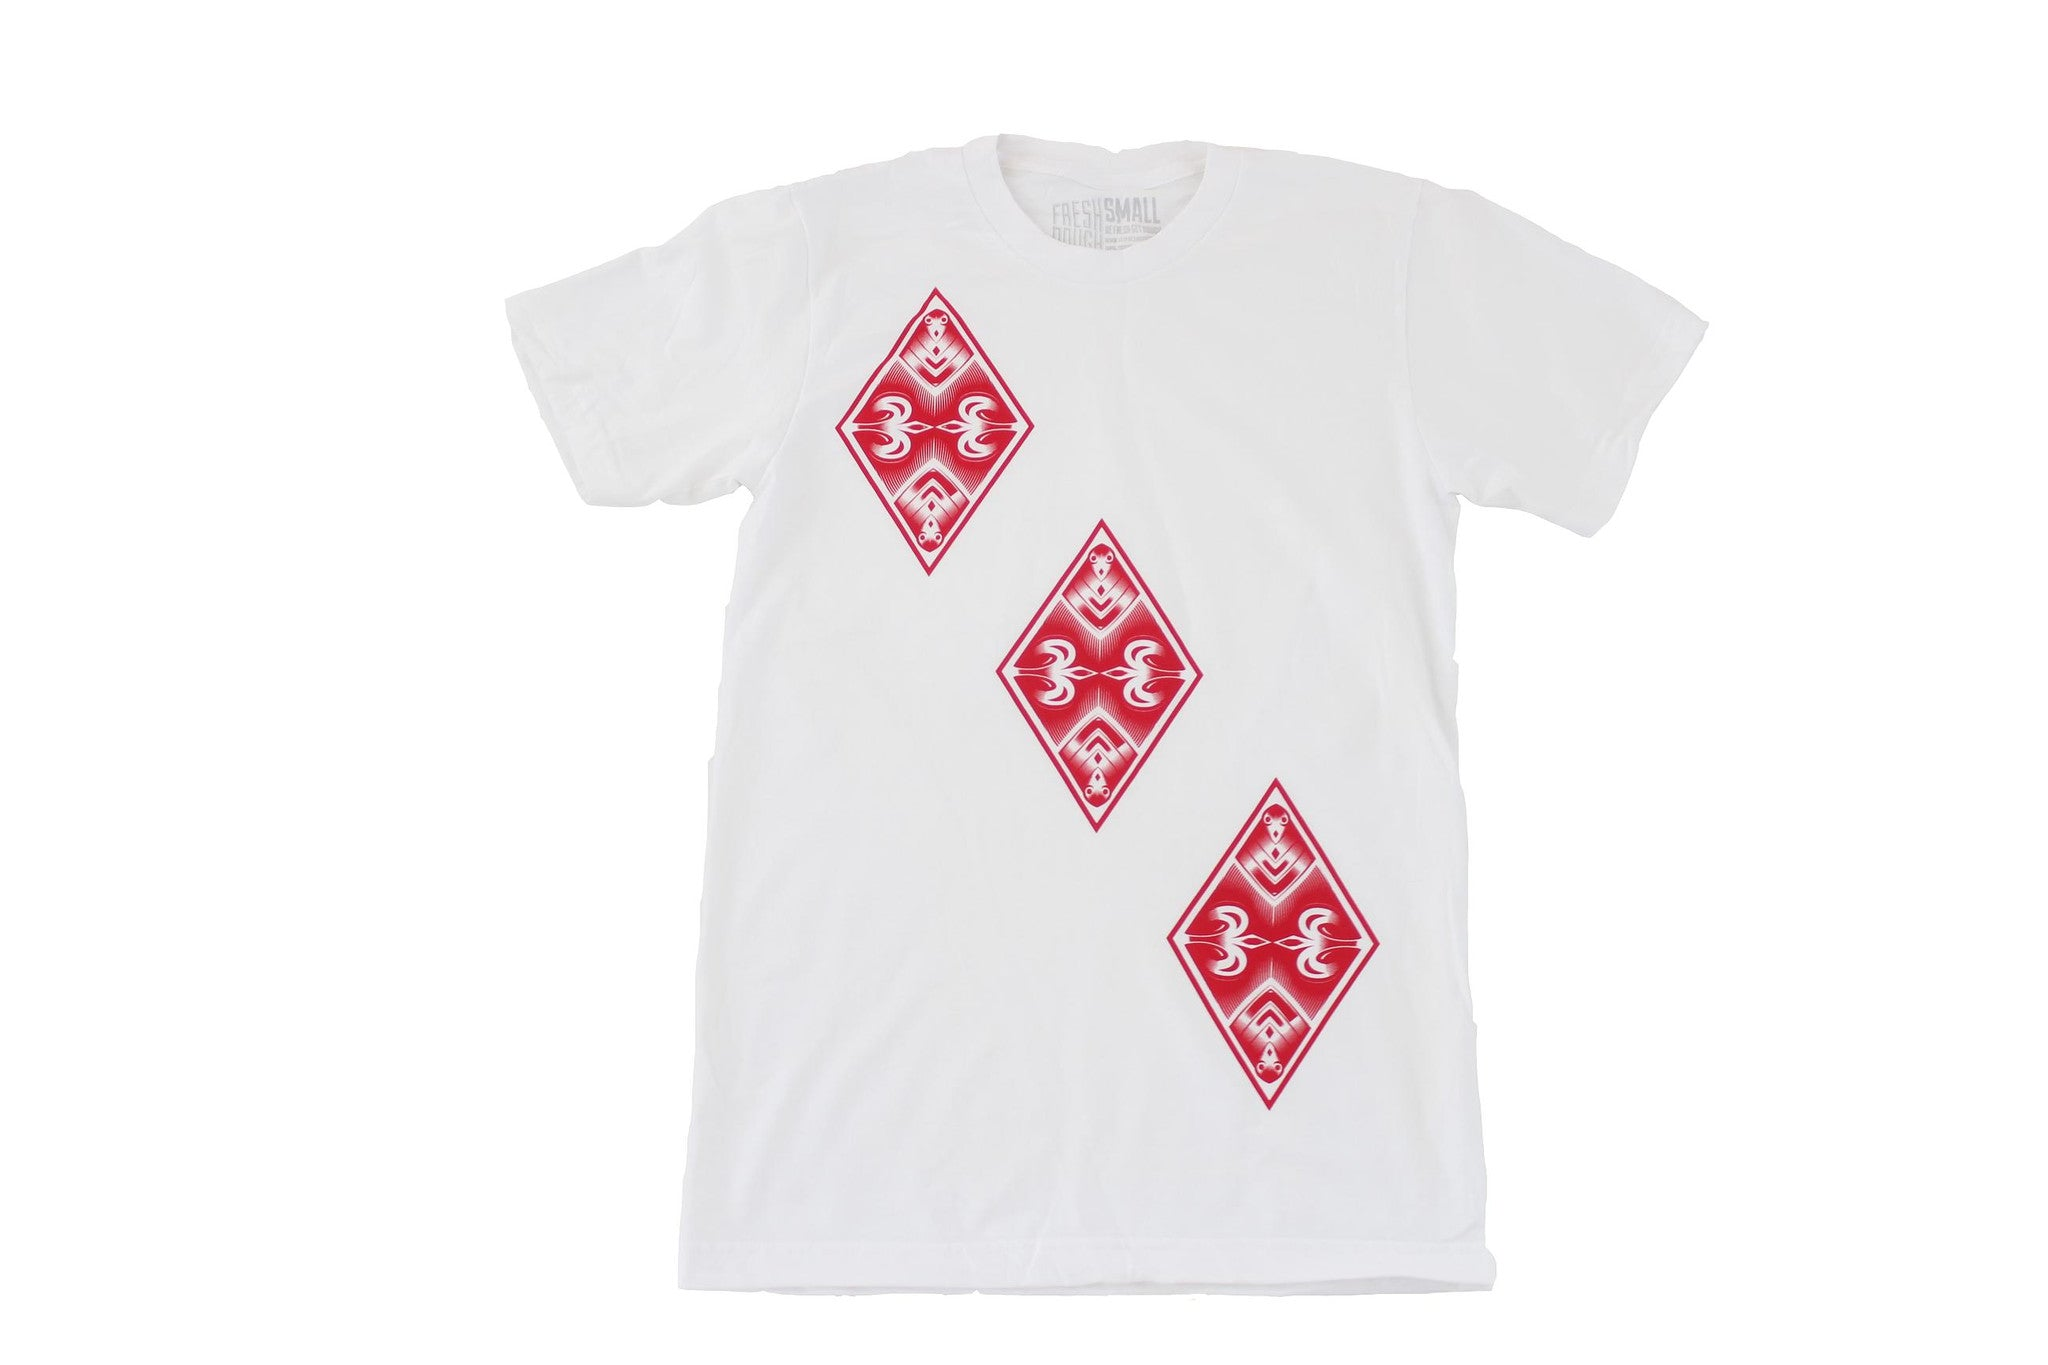 Three of Diamonds Tee